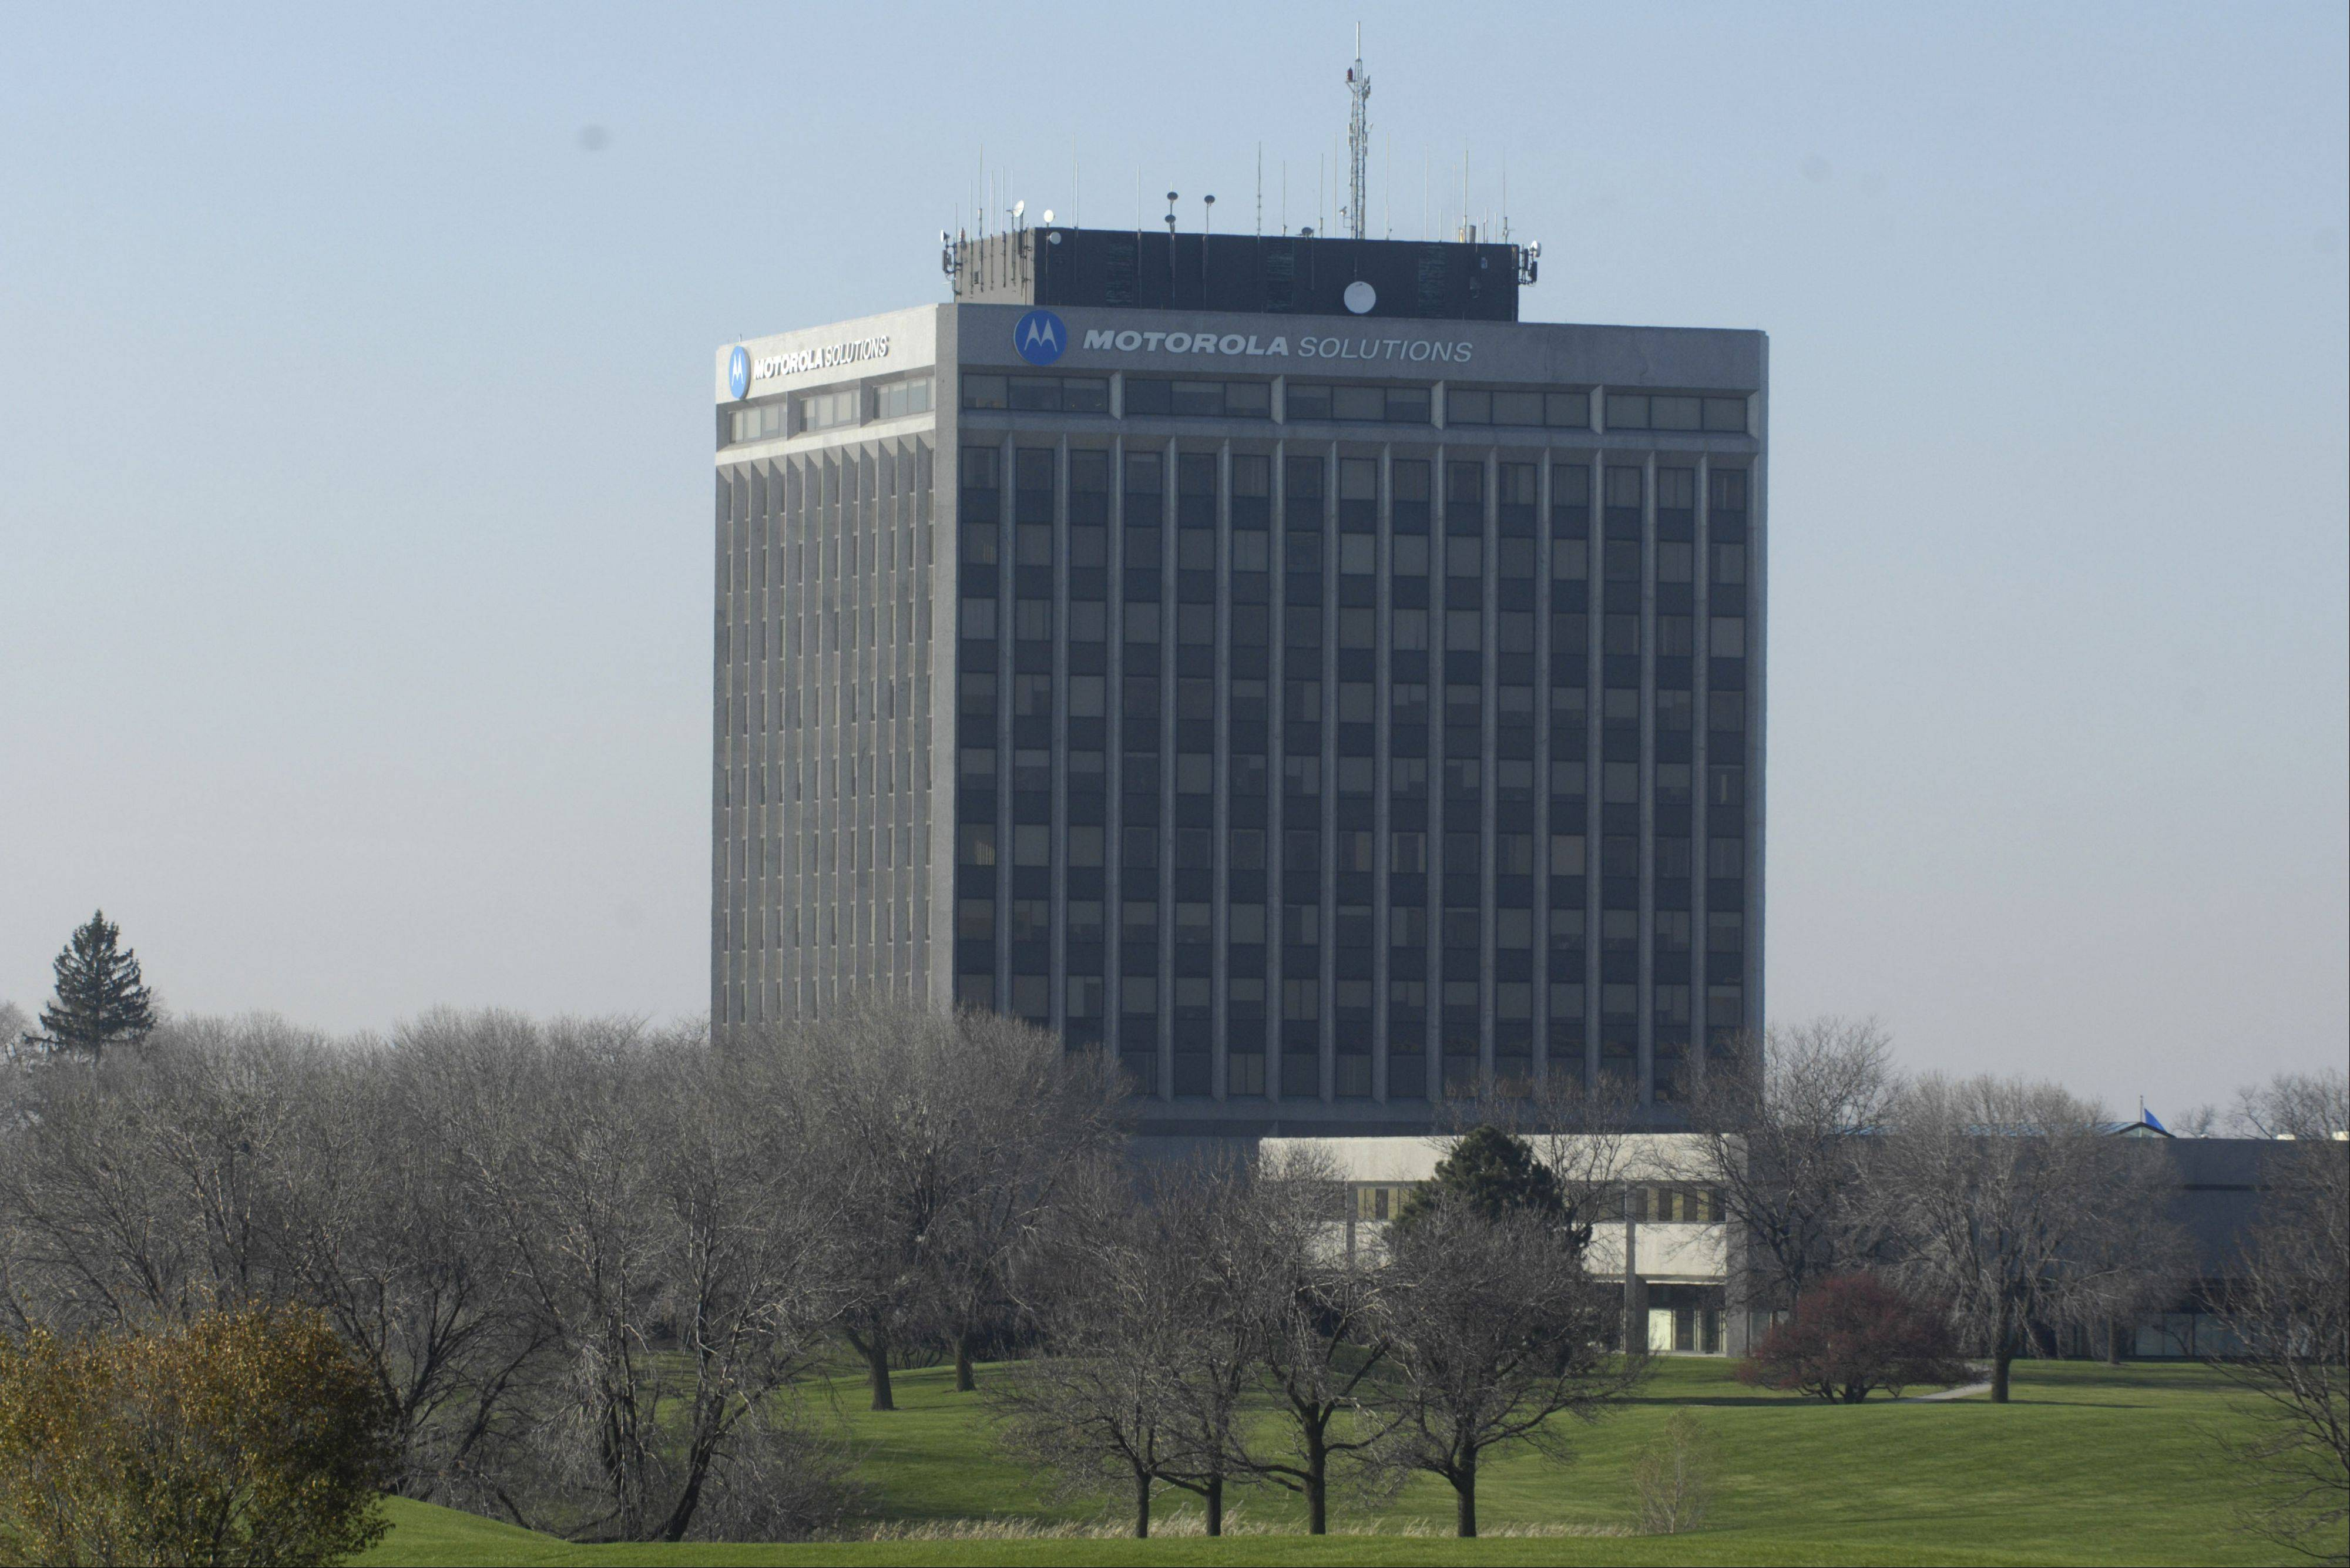 Motorola Solutions will move some staff members out of its Schaumburg headquarters to downtown Chicago beginning in January.